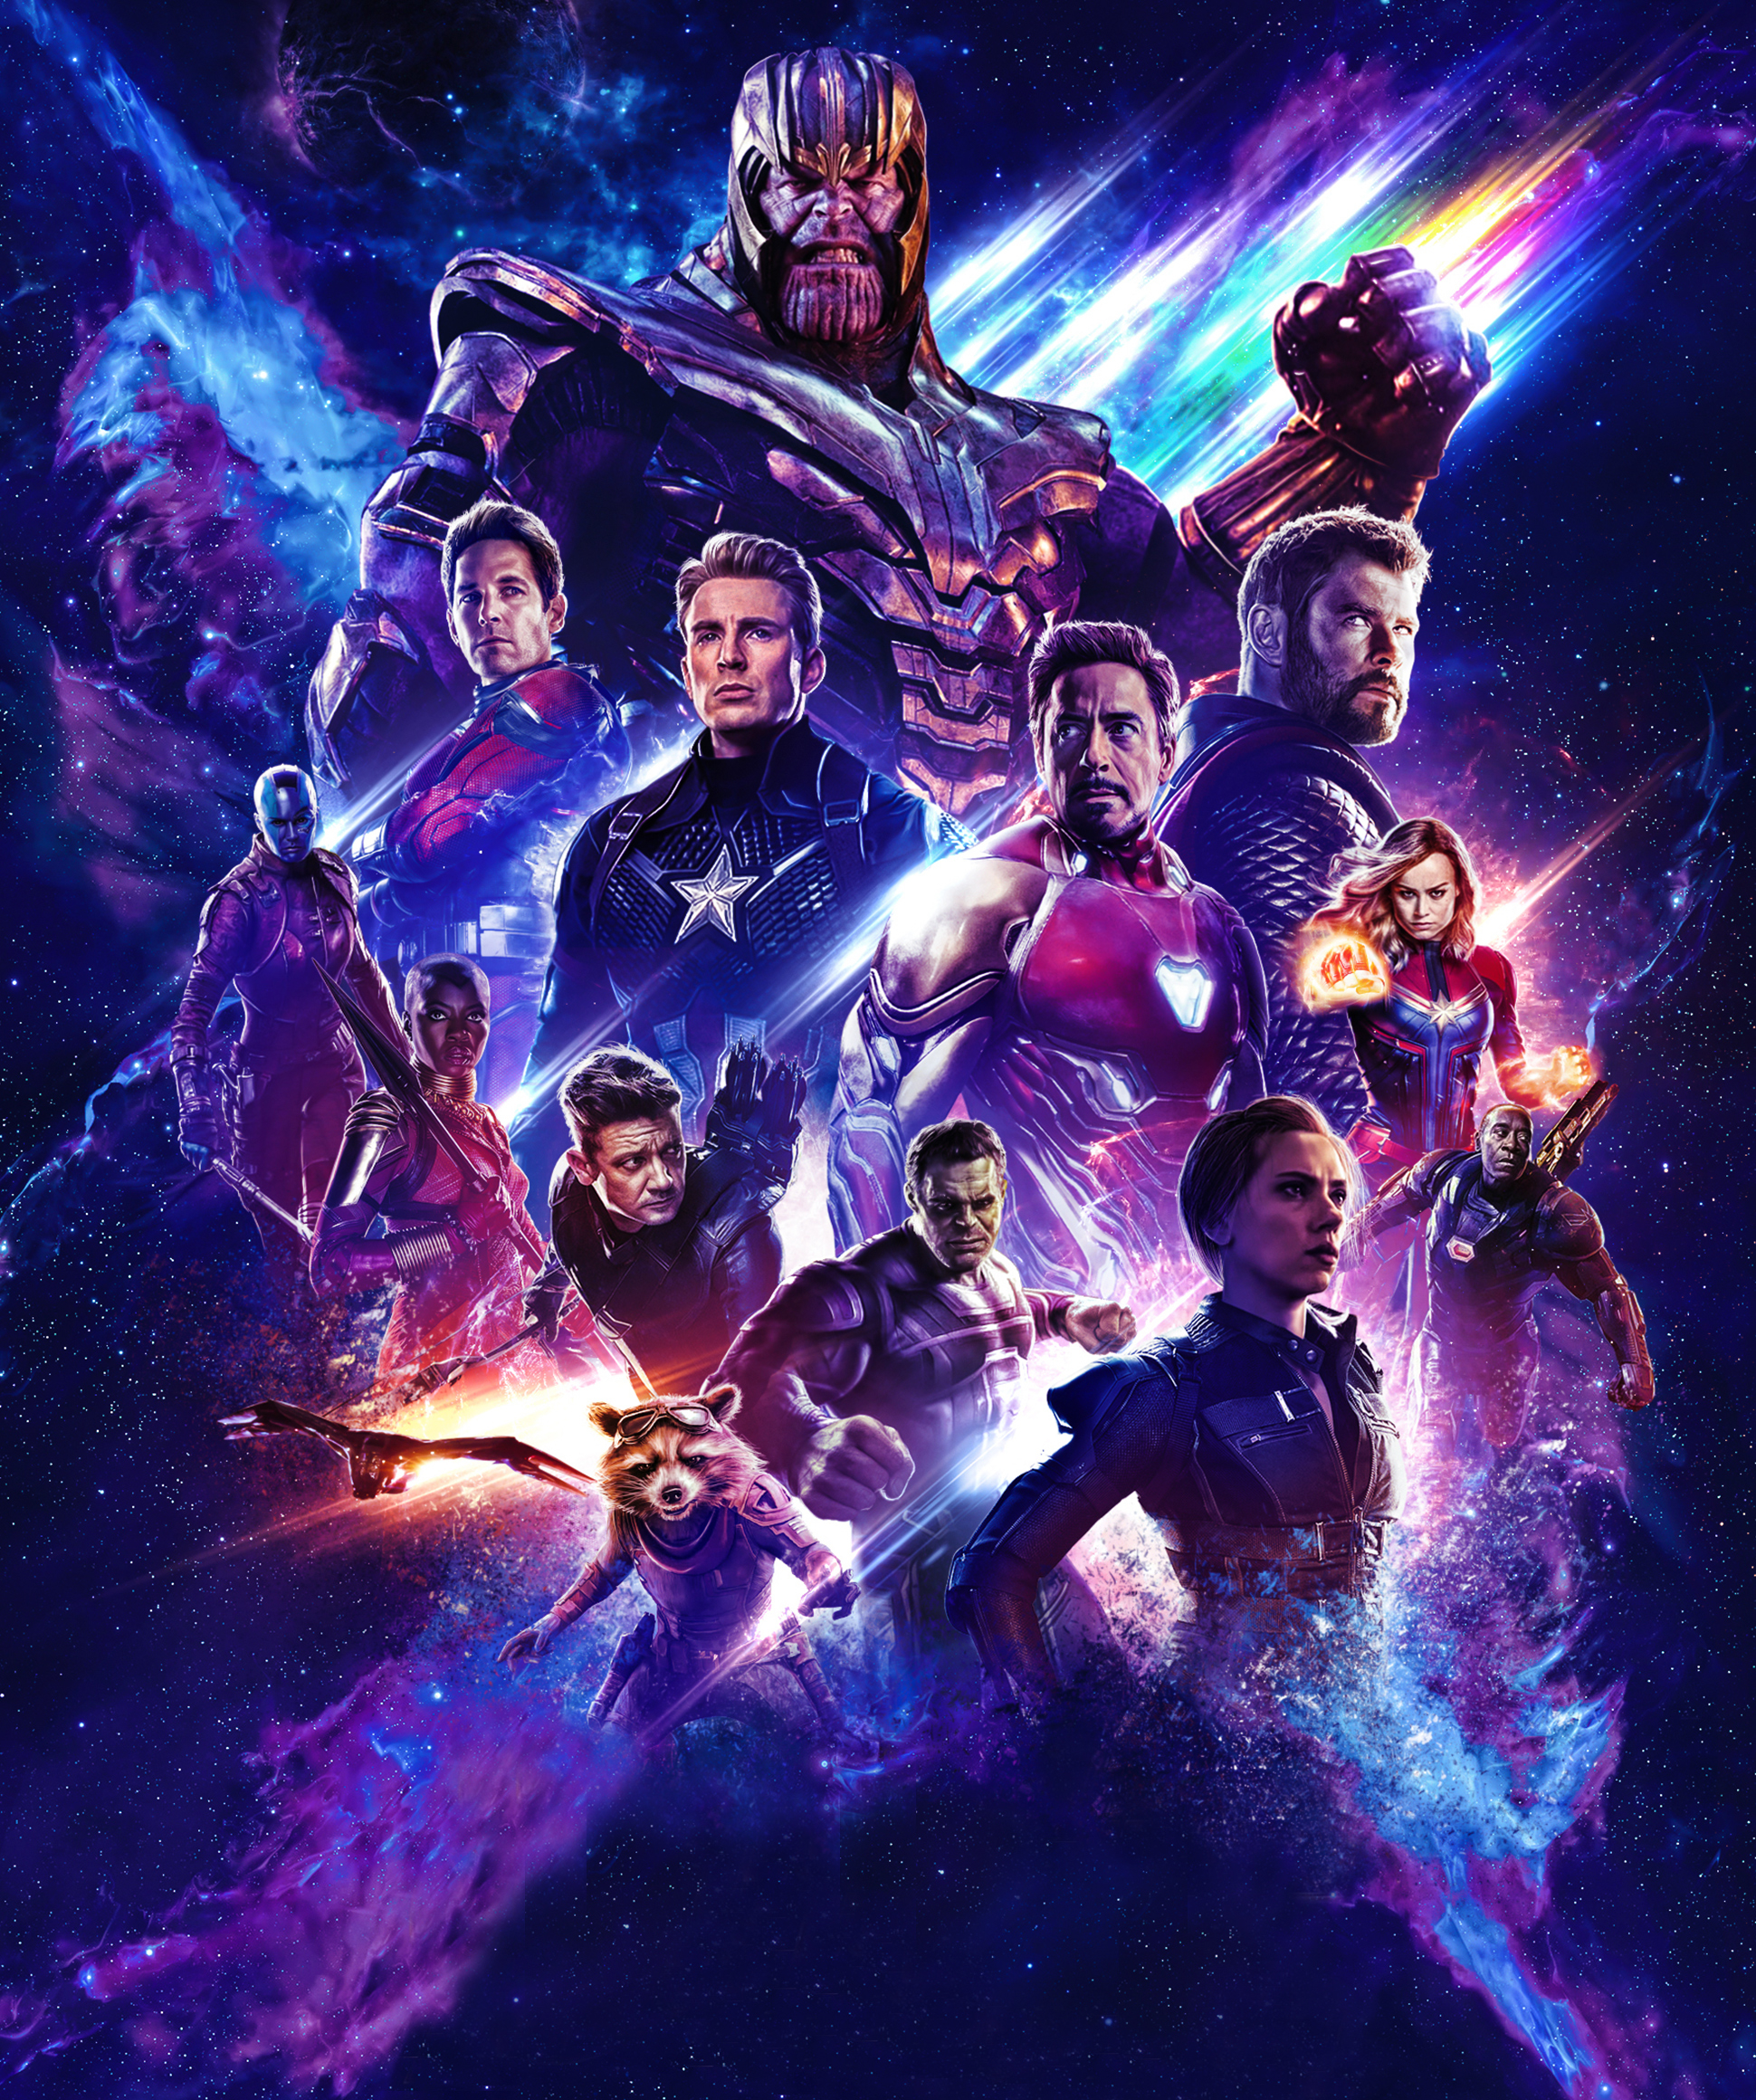 2019 Avengers Endgame Movie Wallpaper, HD Movies 4K